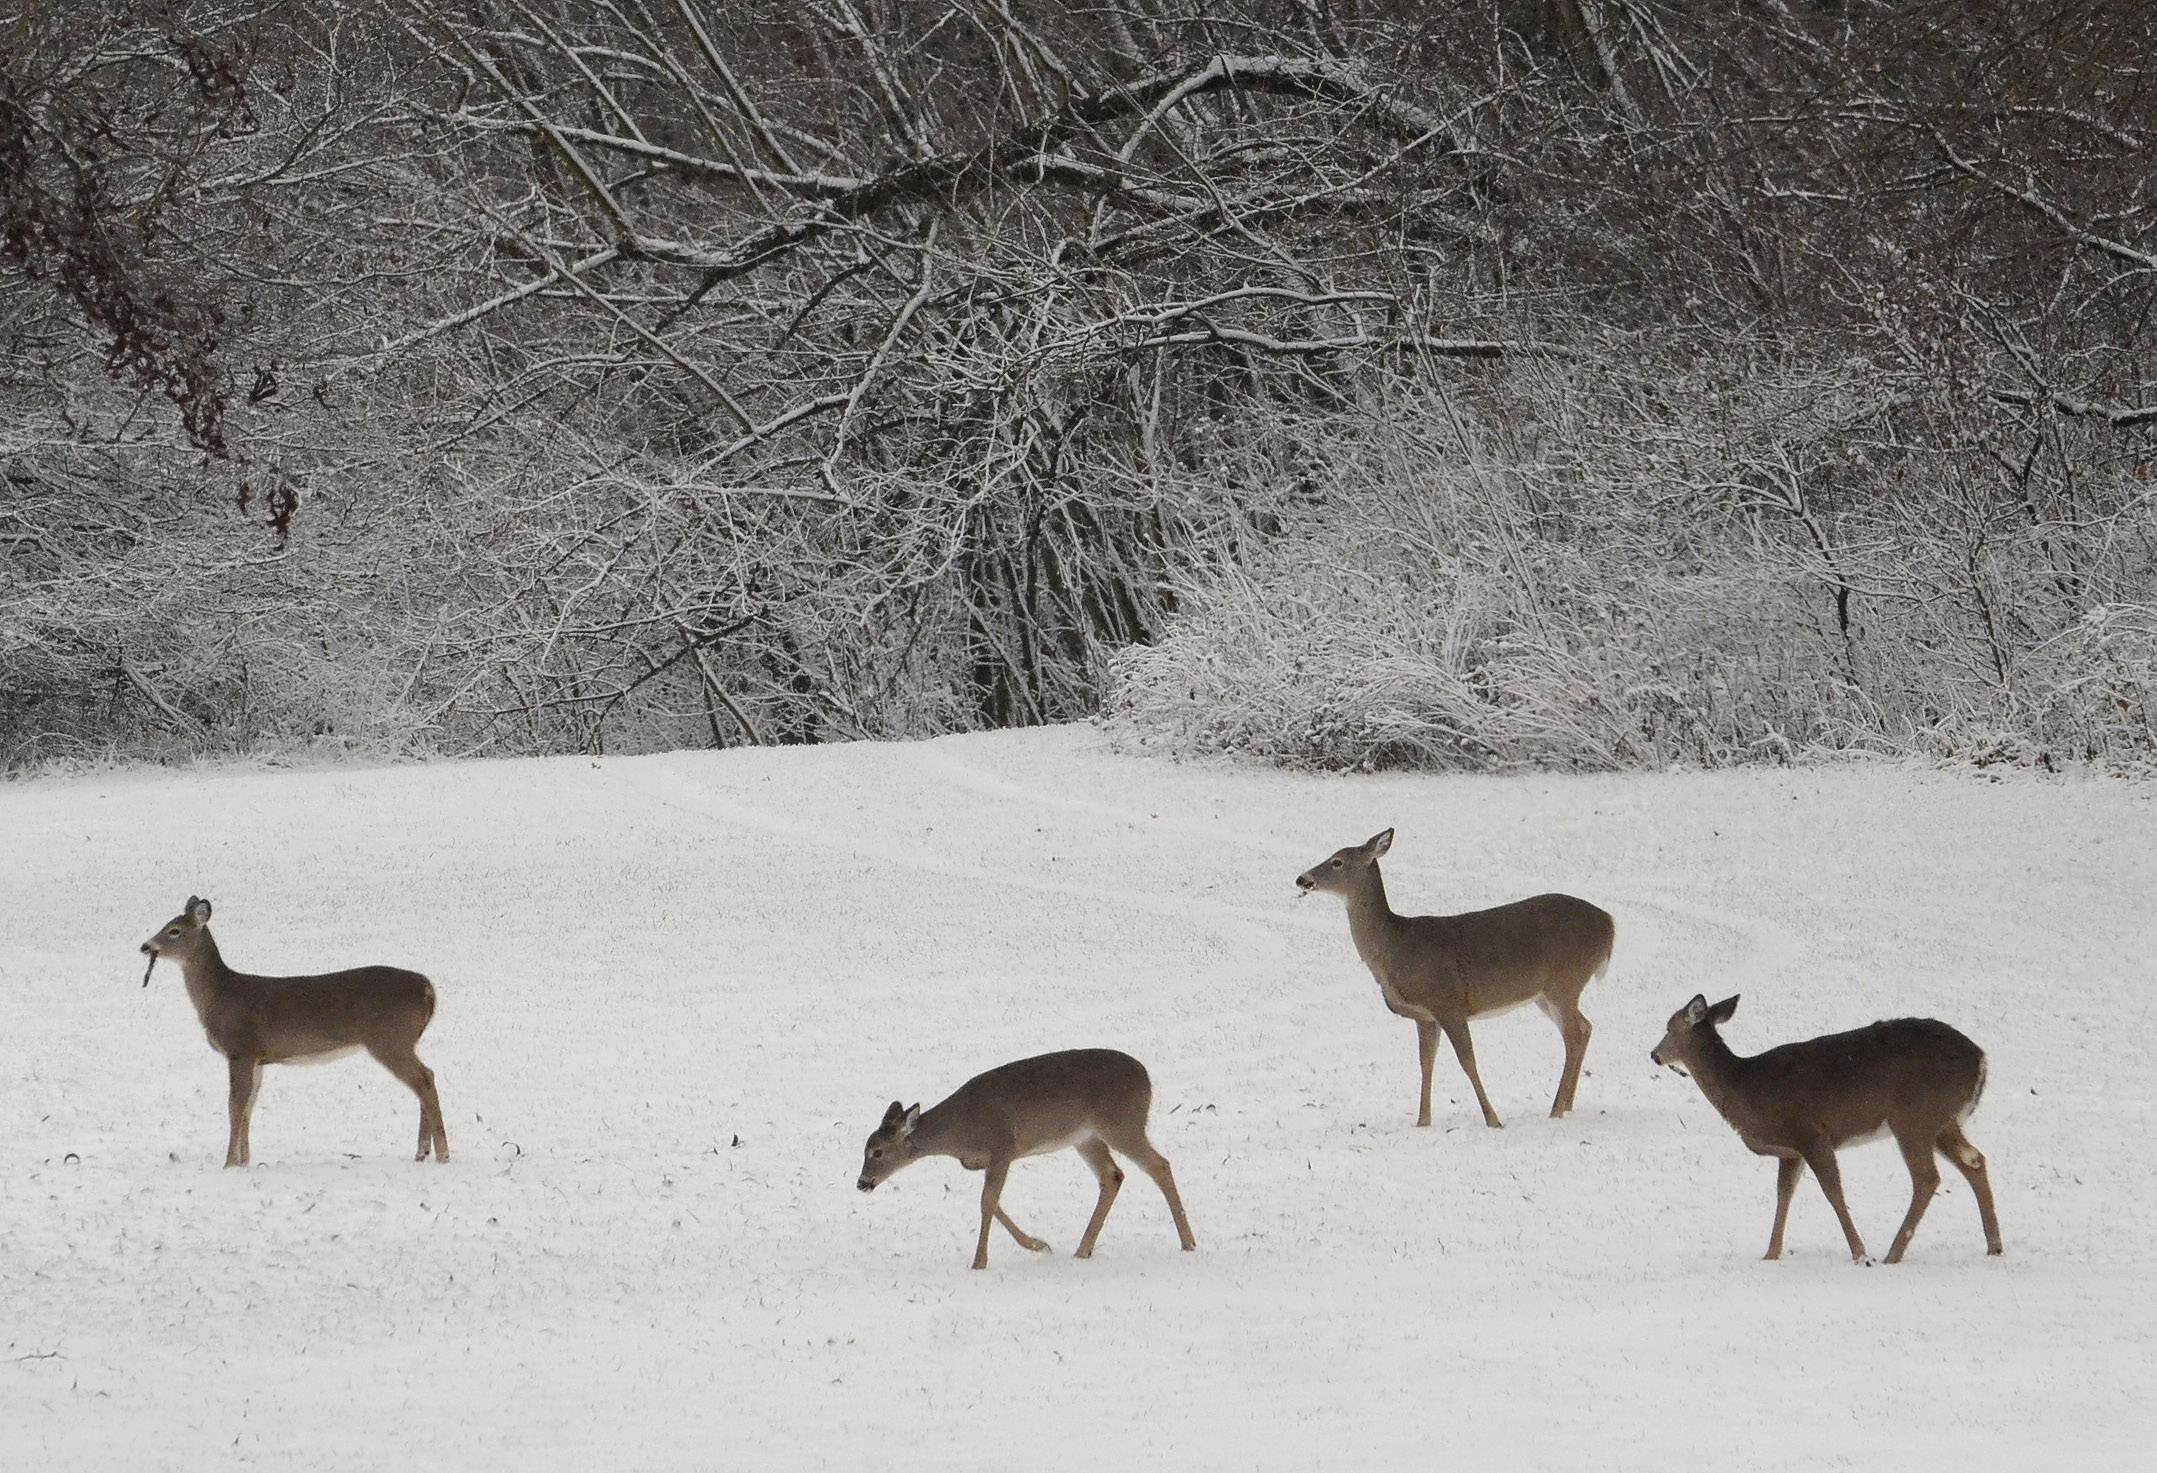 Deer wander in the snow Monday afternoon in Deer Grove East forest preserve in Palatine.